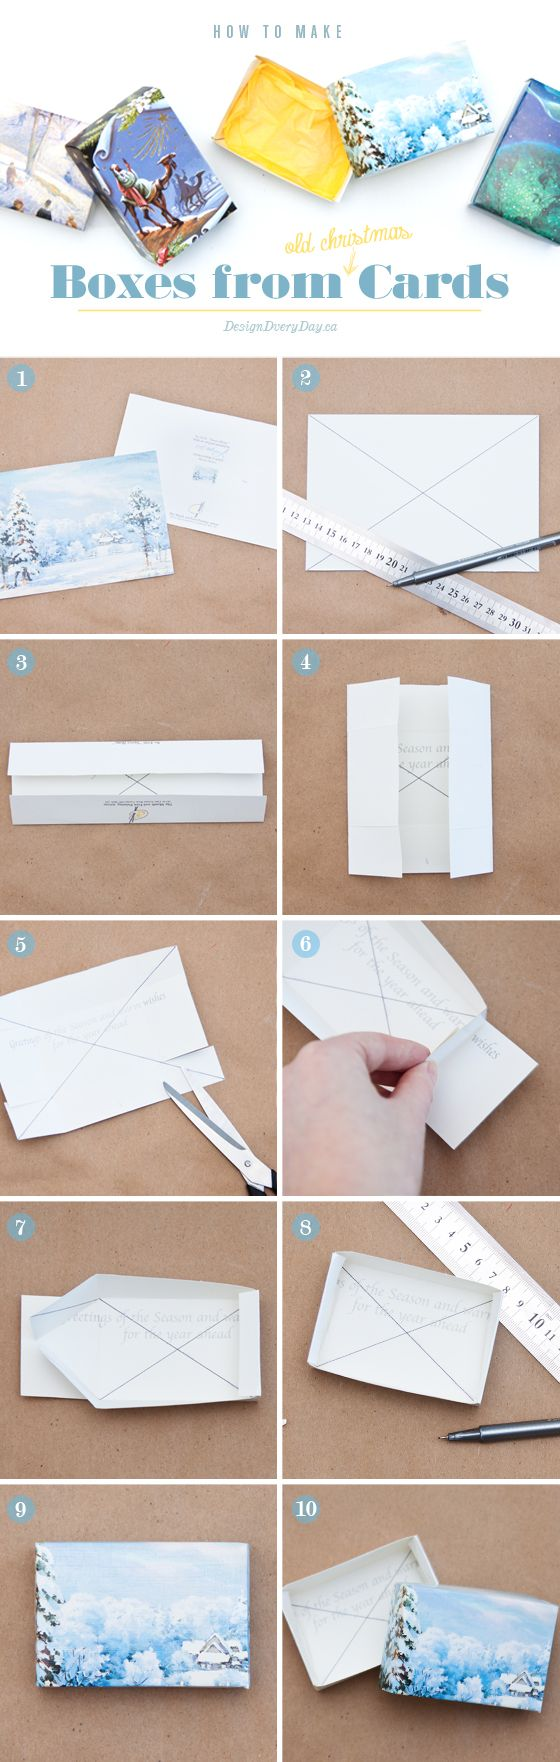 DIT: how to make boxes from old christmas cards - perfect for homemade gift giving